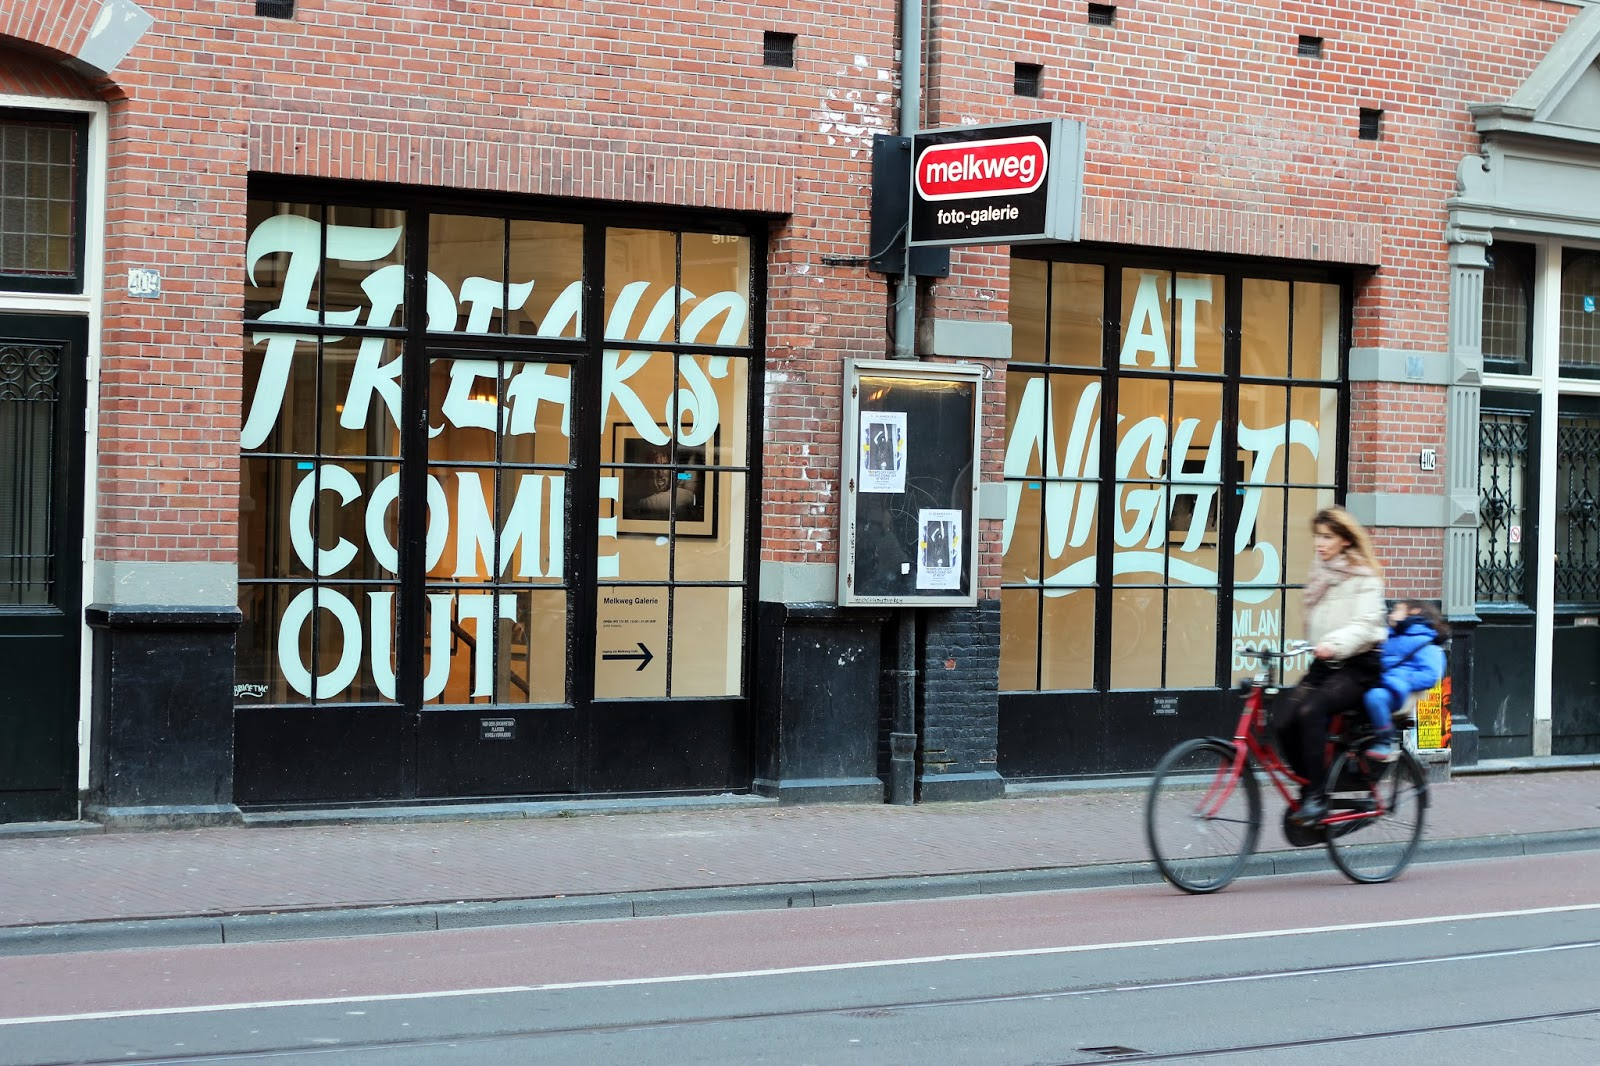 melkweg foto-galerie amsterdam freaks come out at night